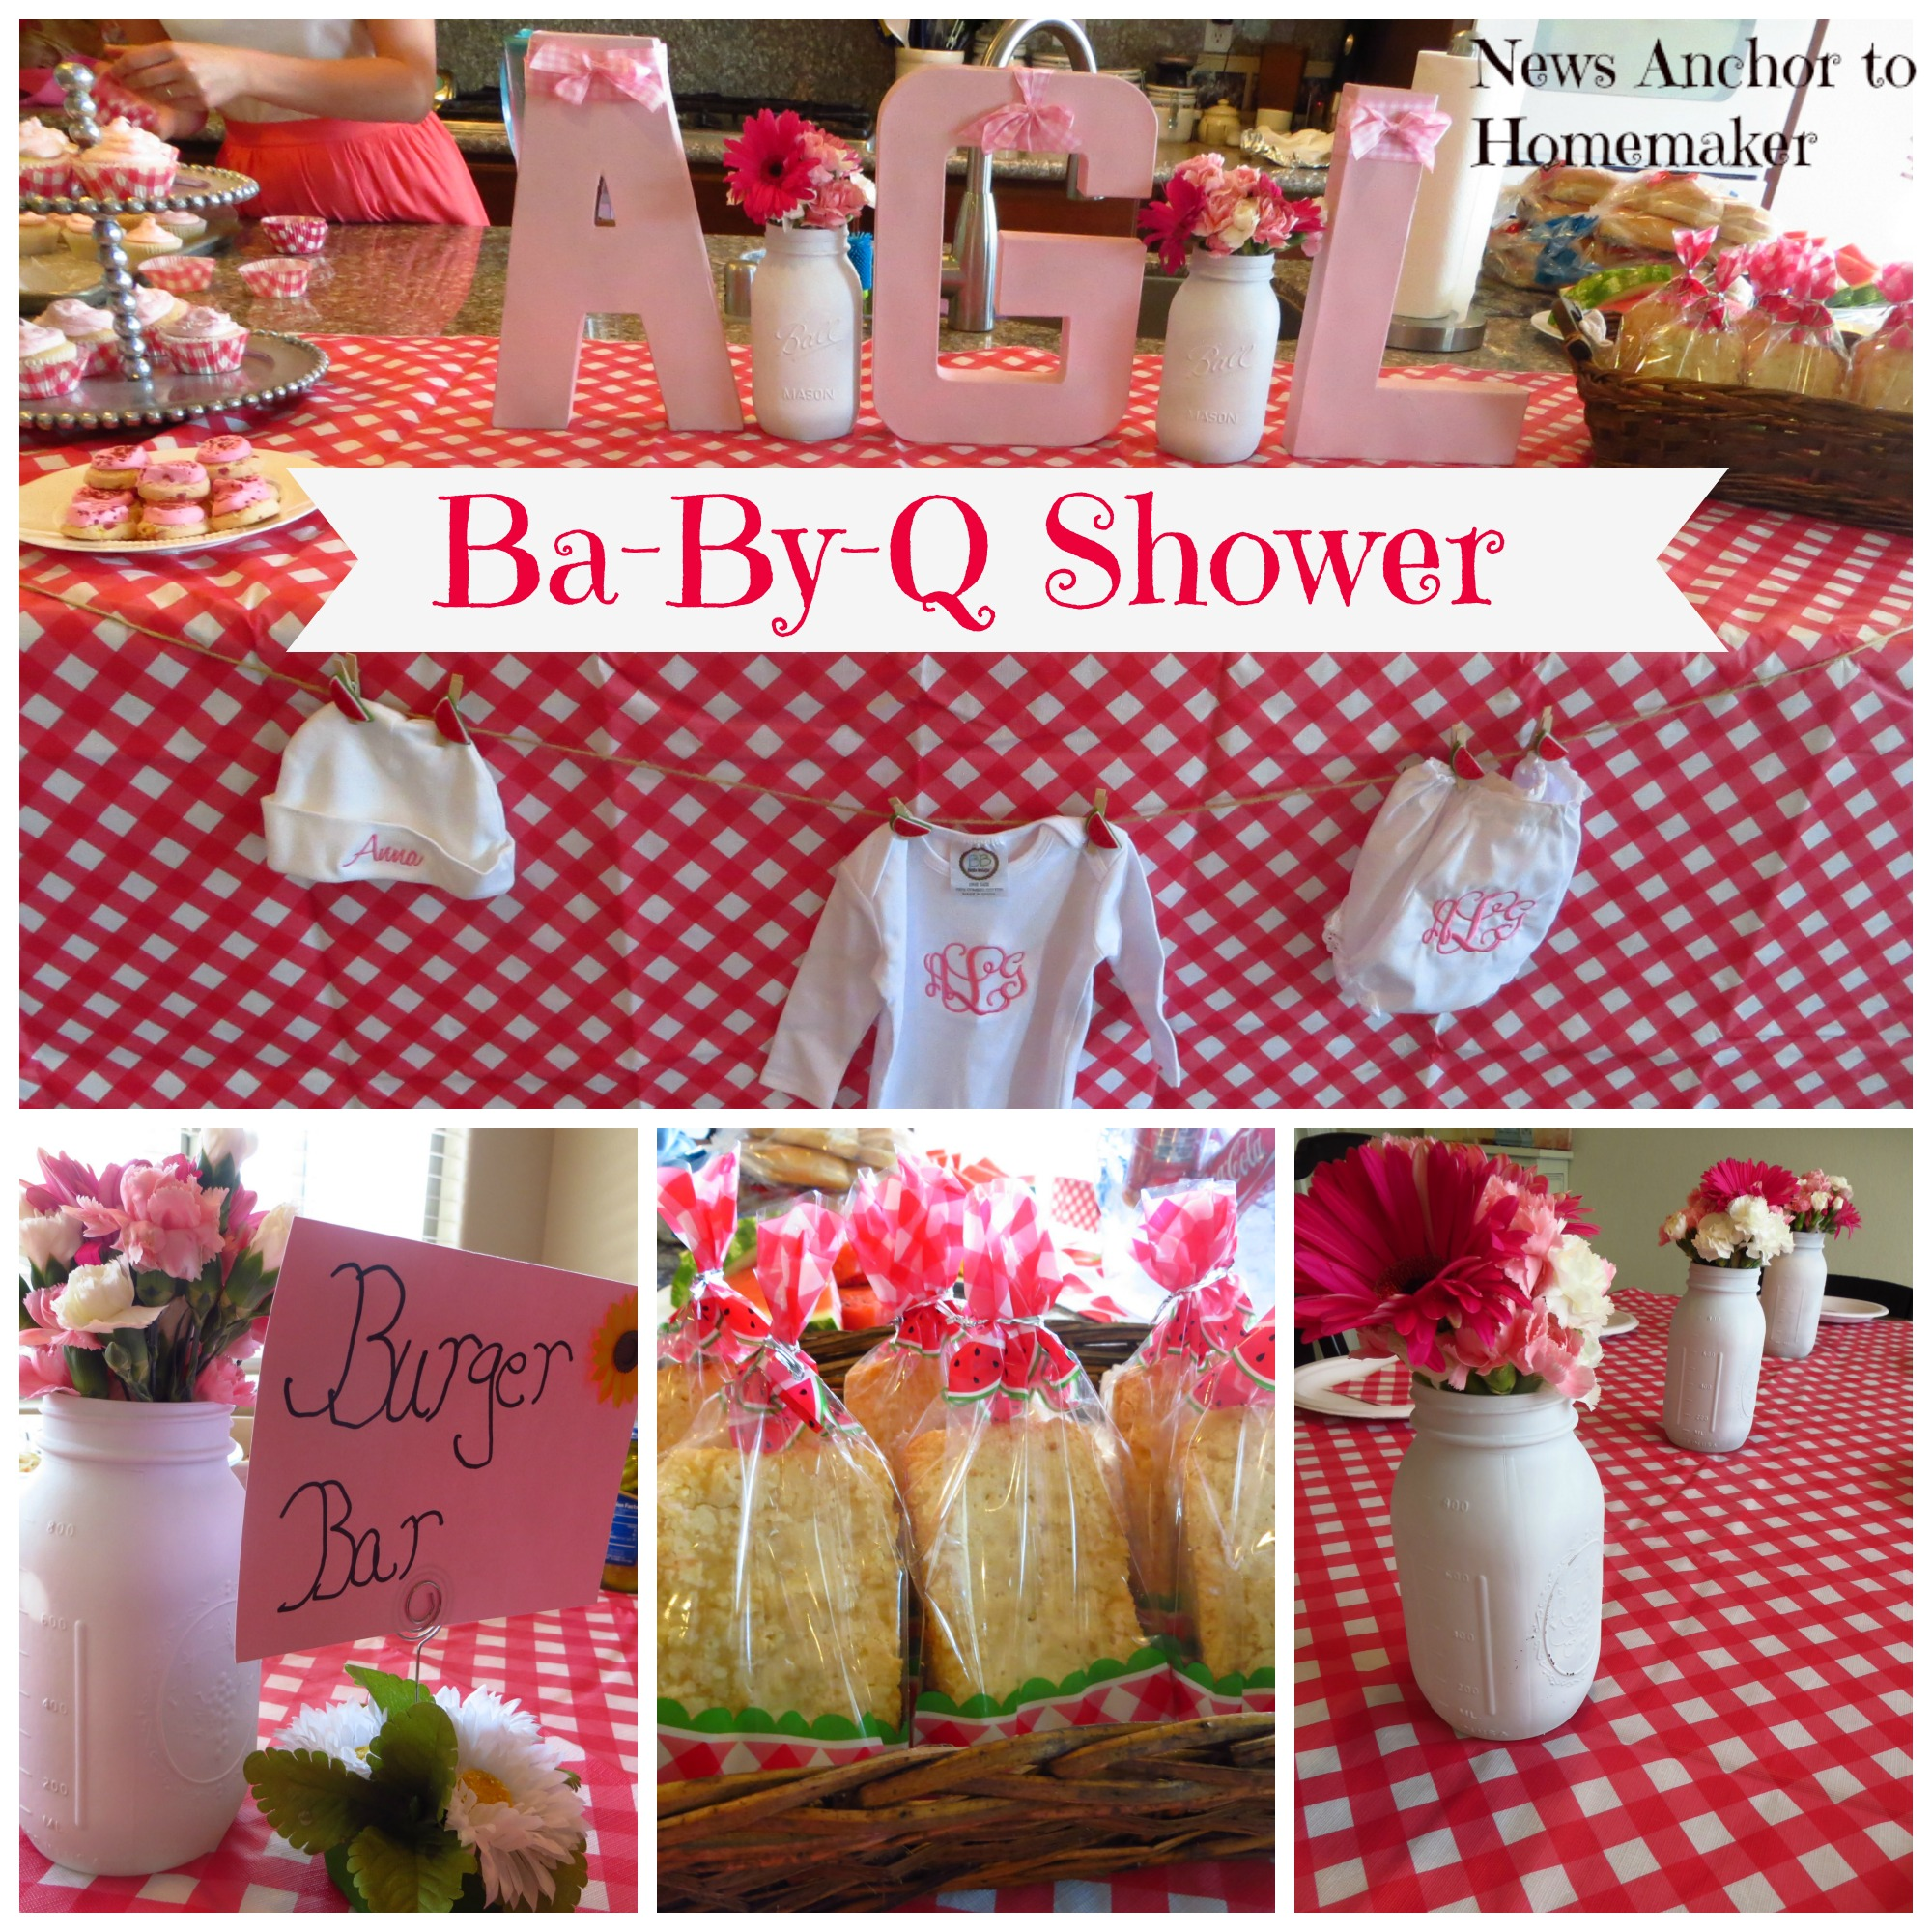 Ba by q shower co ed barbecue themed baby shower news for Baby shower bbq decoration ideas